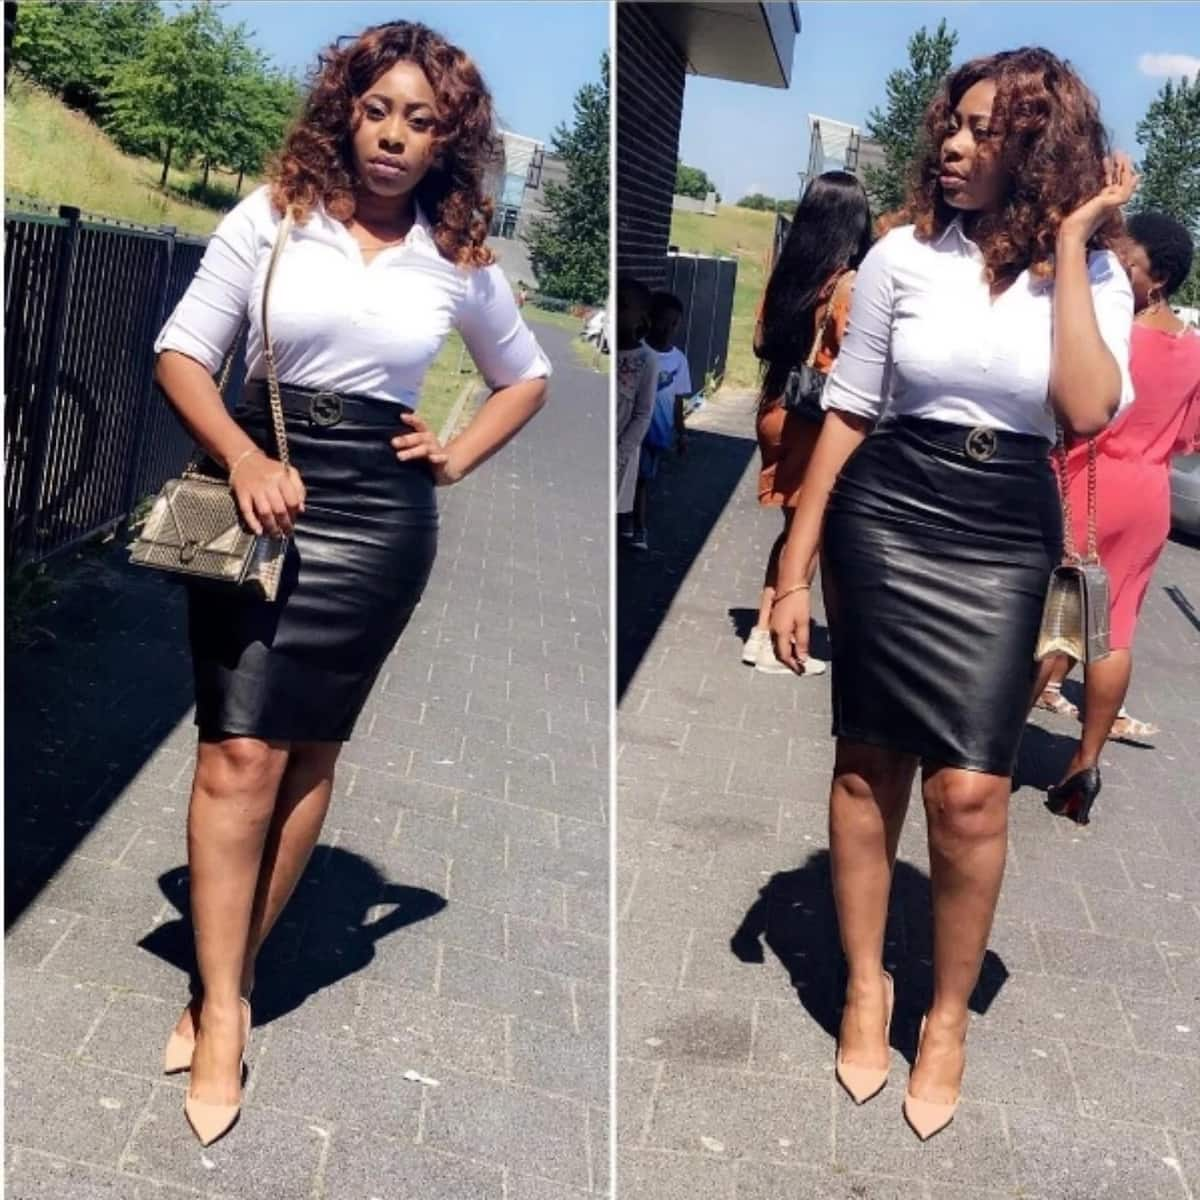 Ex-wife of Afryie Acquah dazzles in new photos as she displays her stunning figure